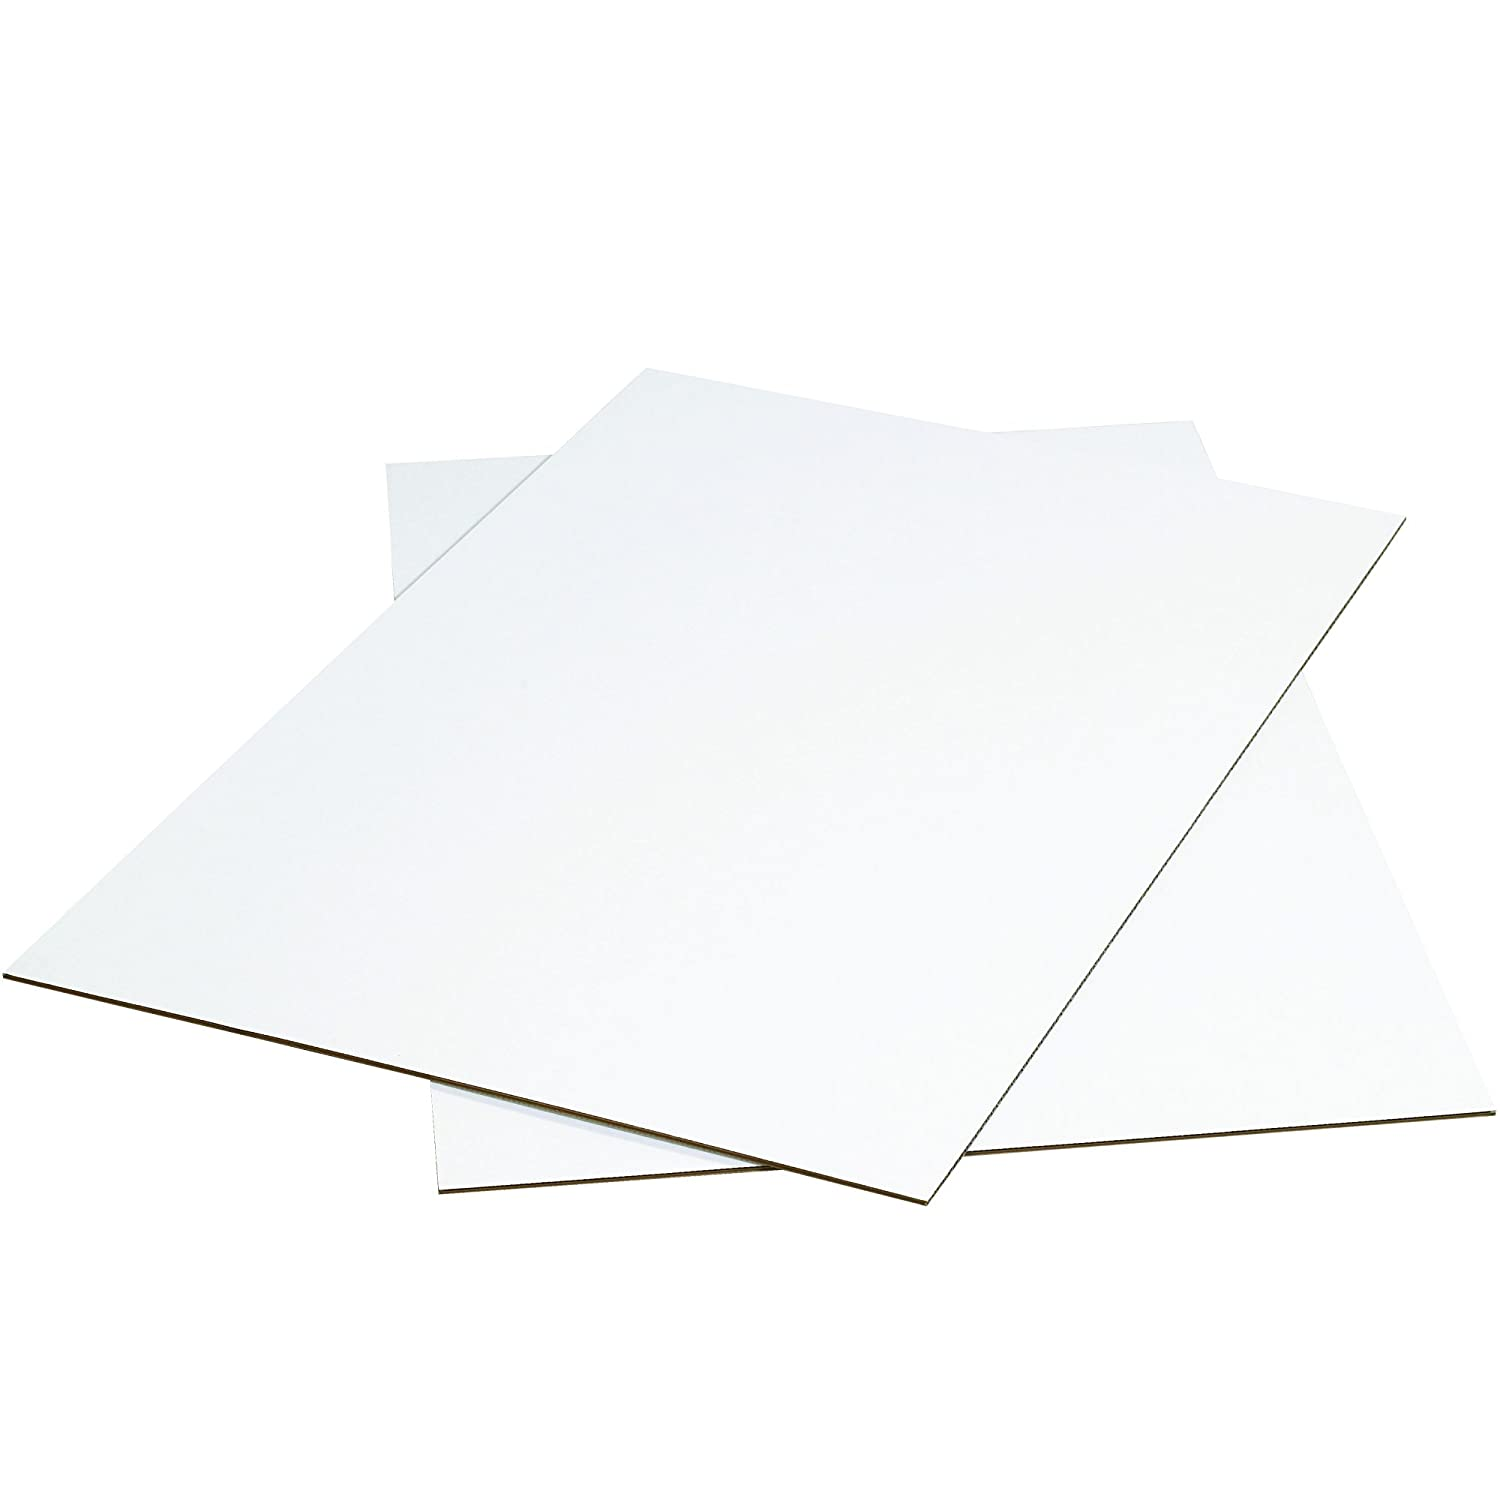 Pack of 5 48 x 48 BOX USA BSP4848W Corrugated Sheets White